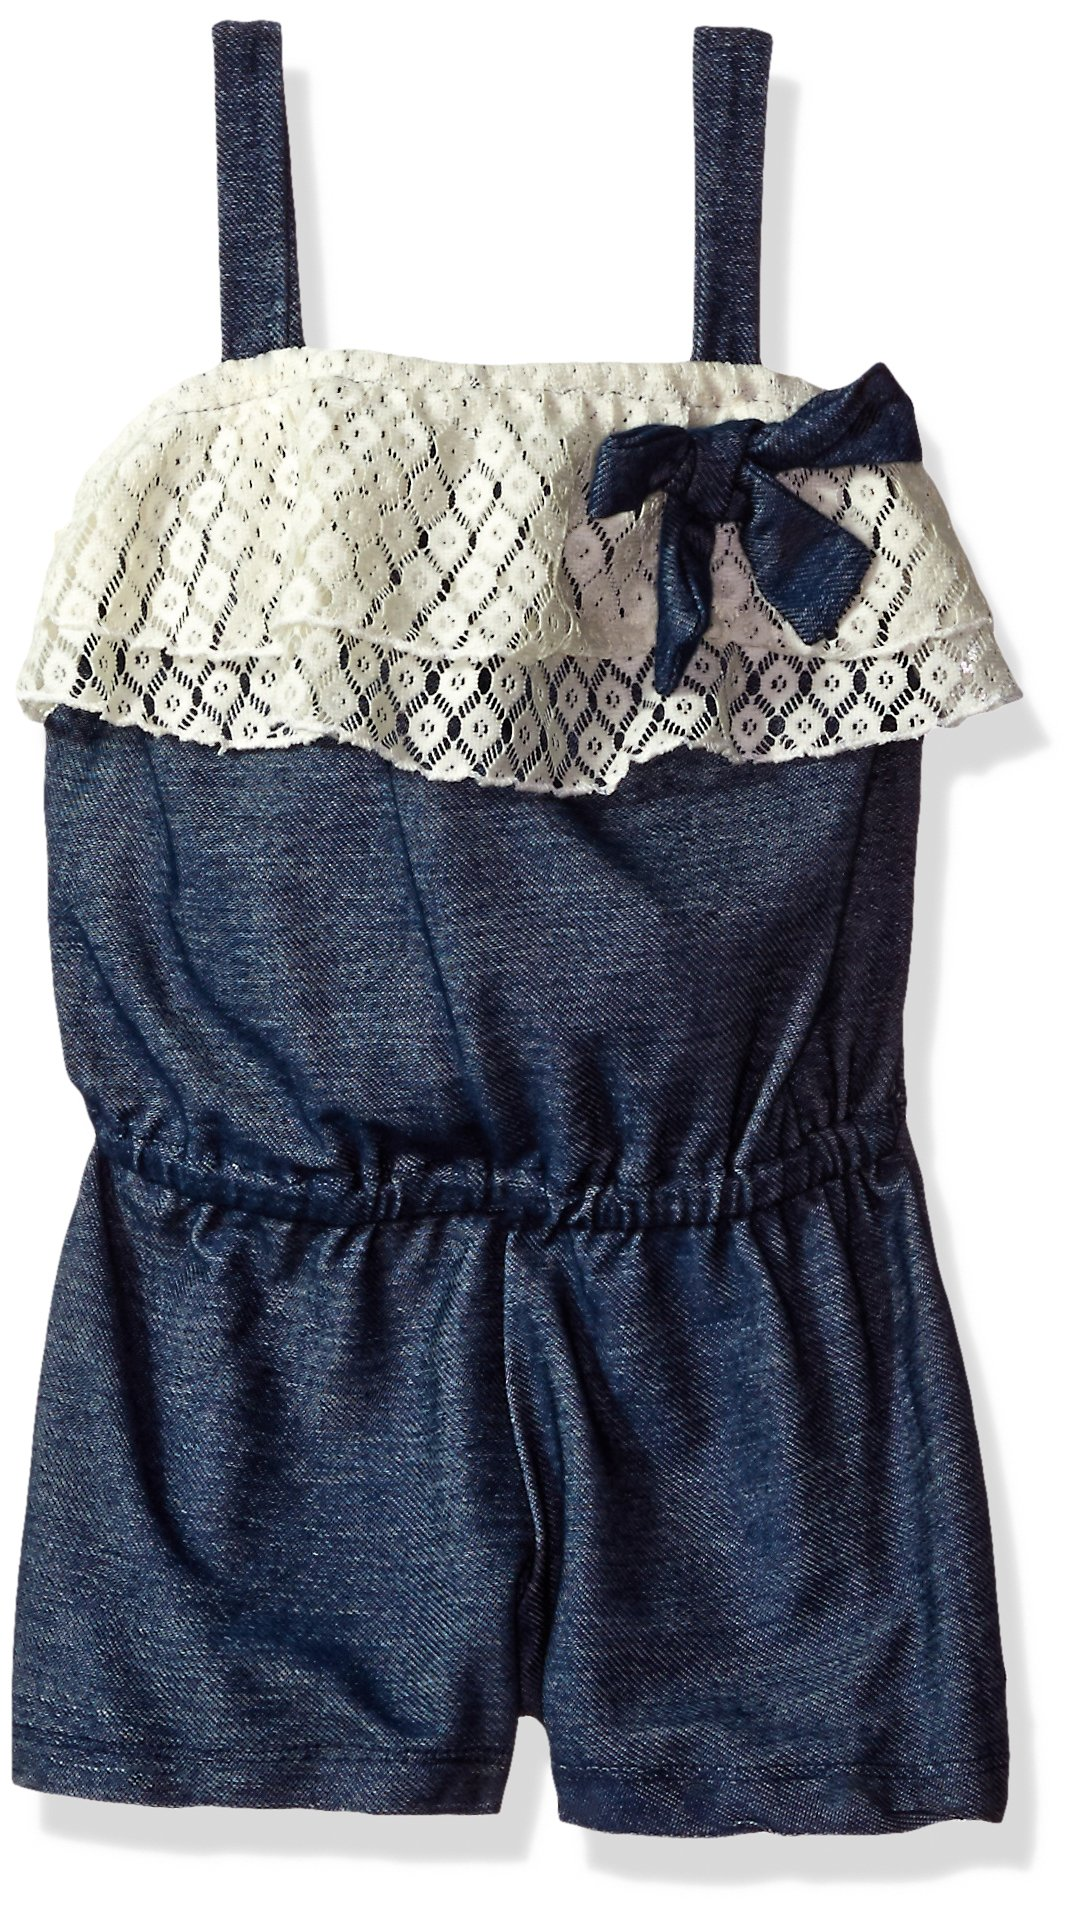 One Step Up Little Girls' Ruffle Knit Denim Romper, Darkblue Denim, 4